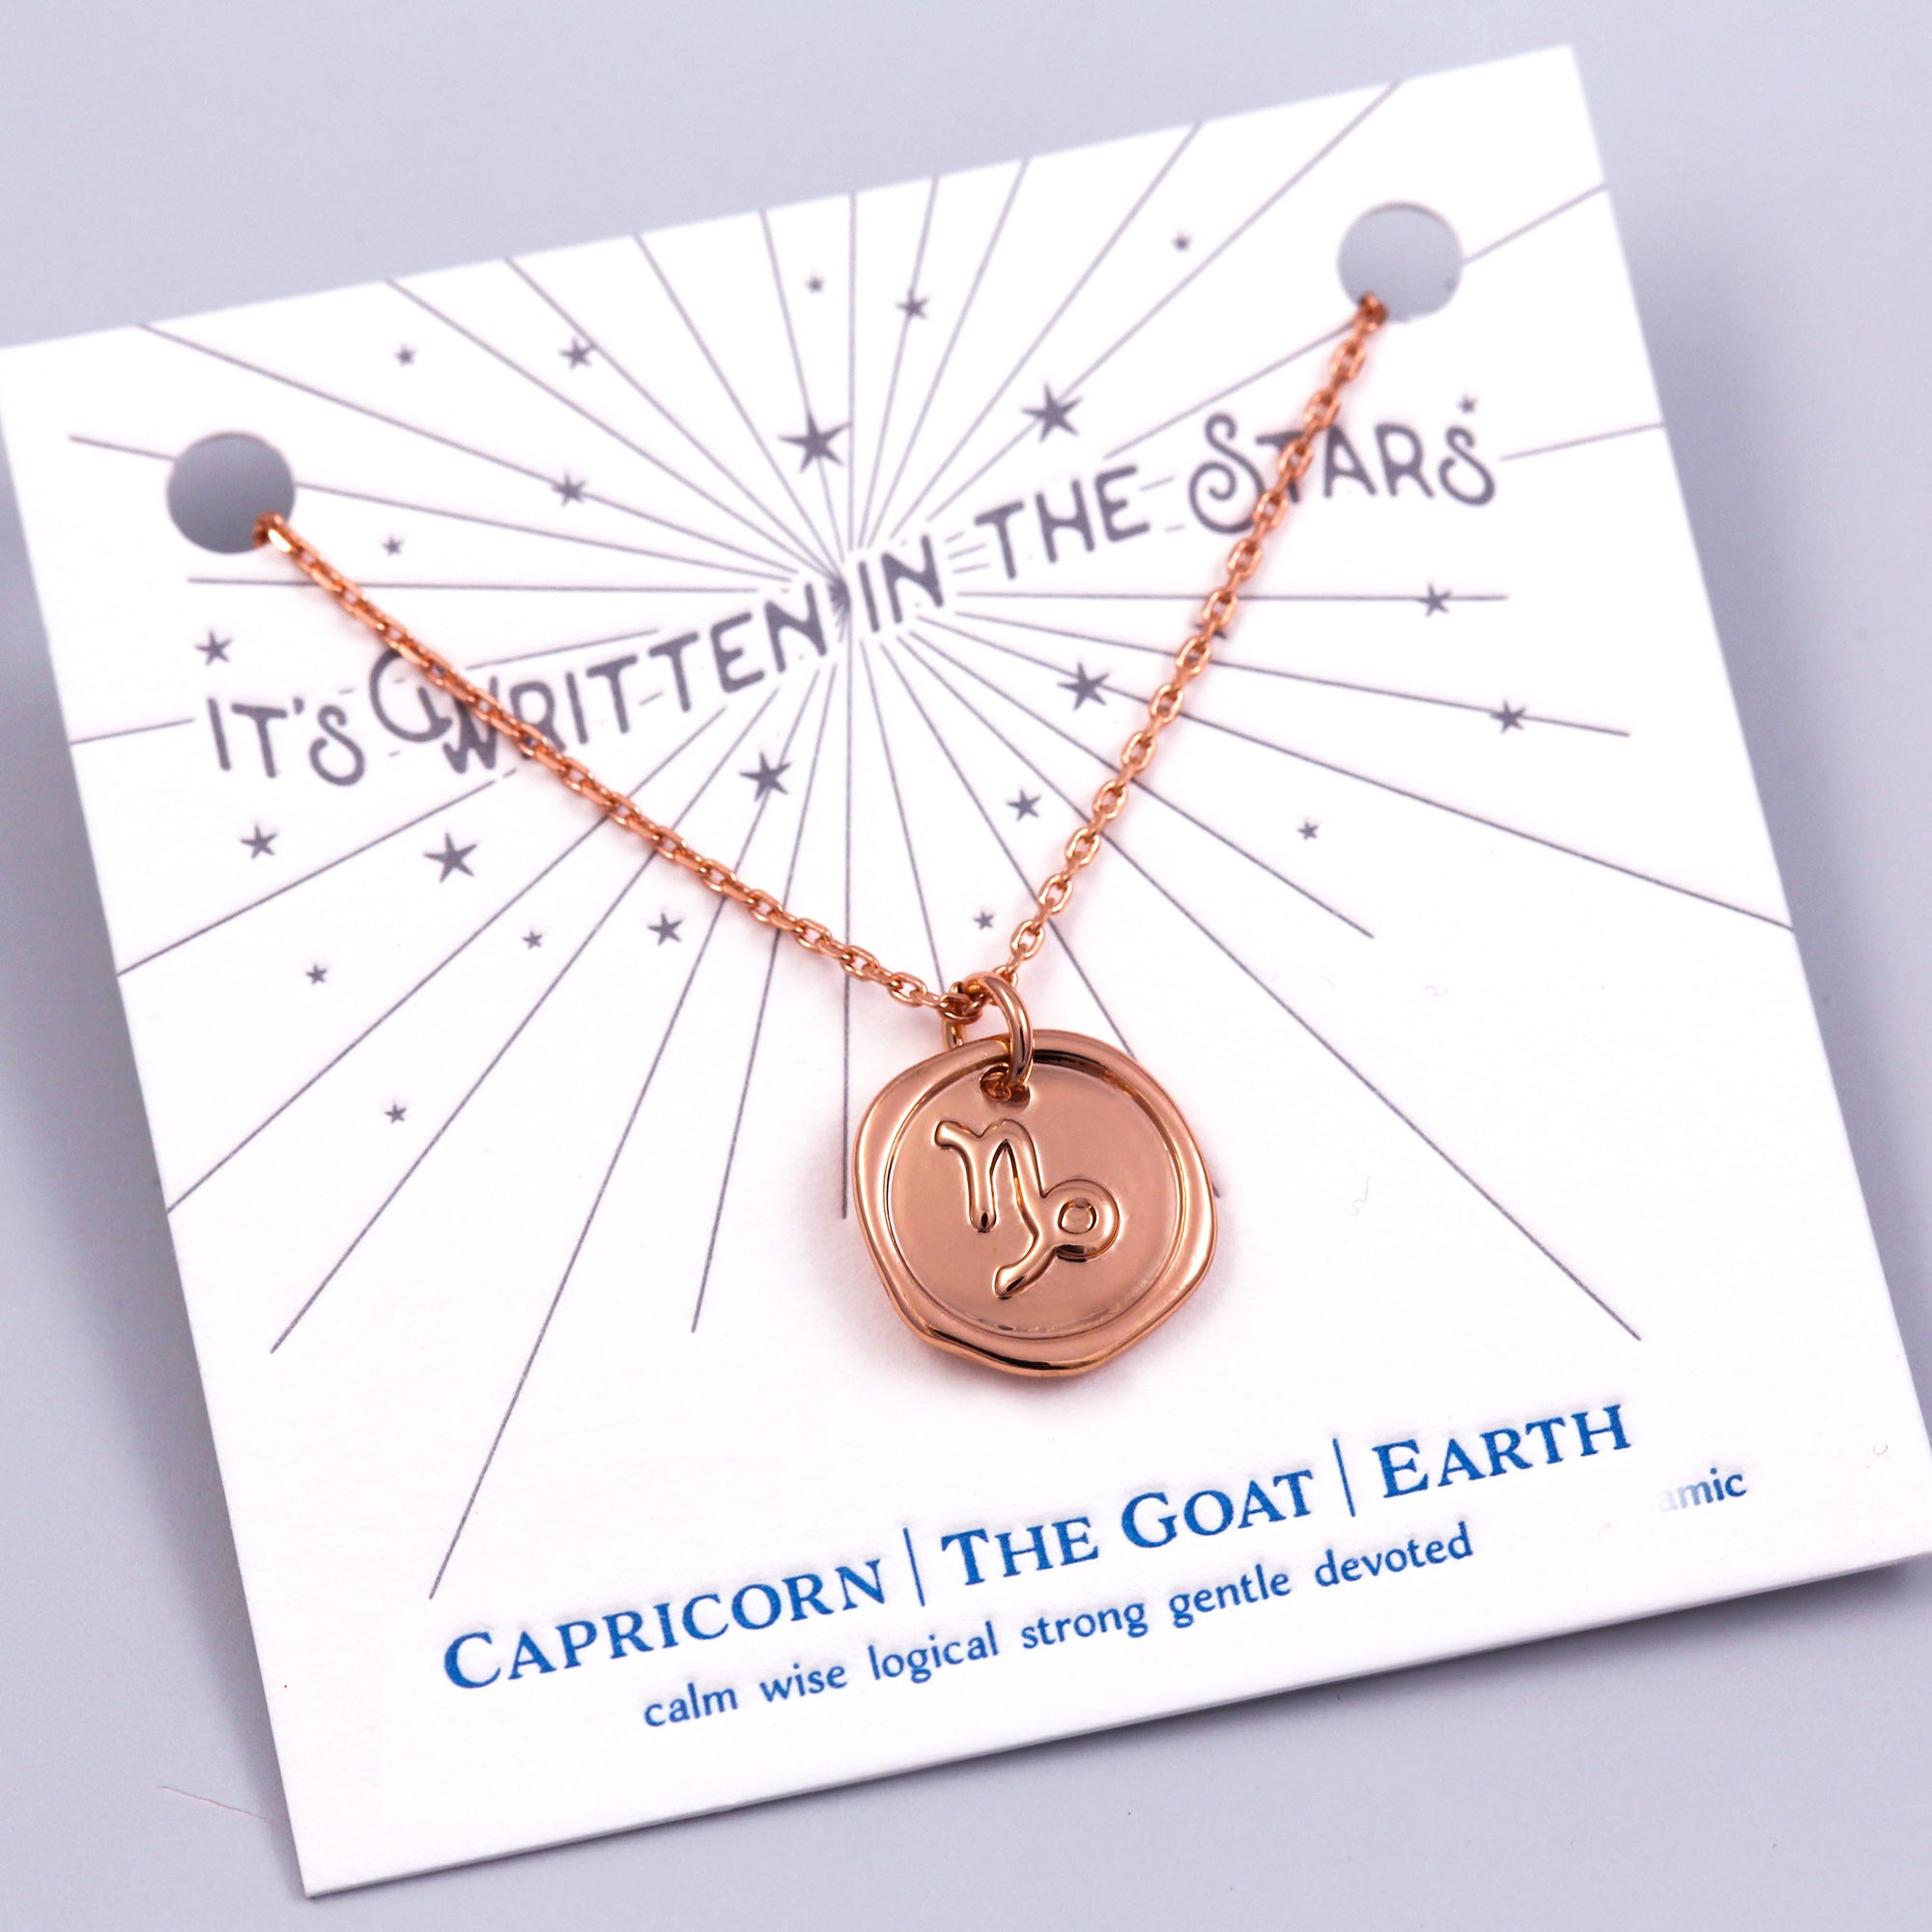 Rose Gold Capricorn Necklace It's Written in the Stars